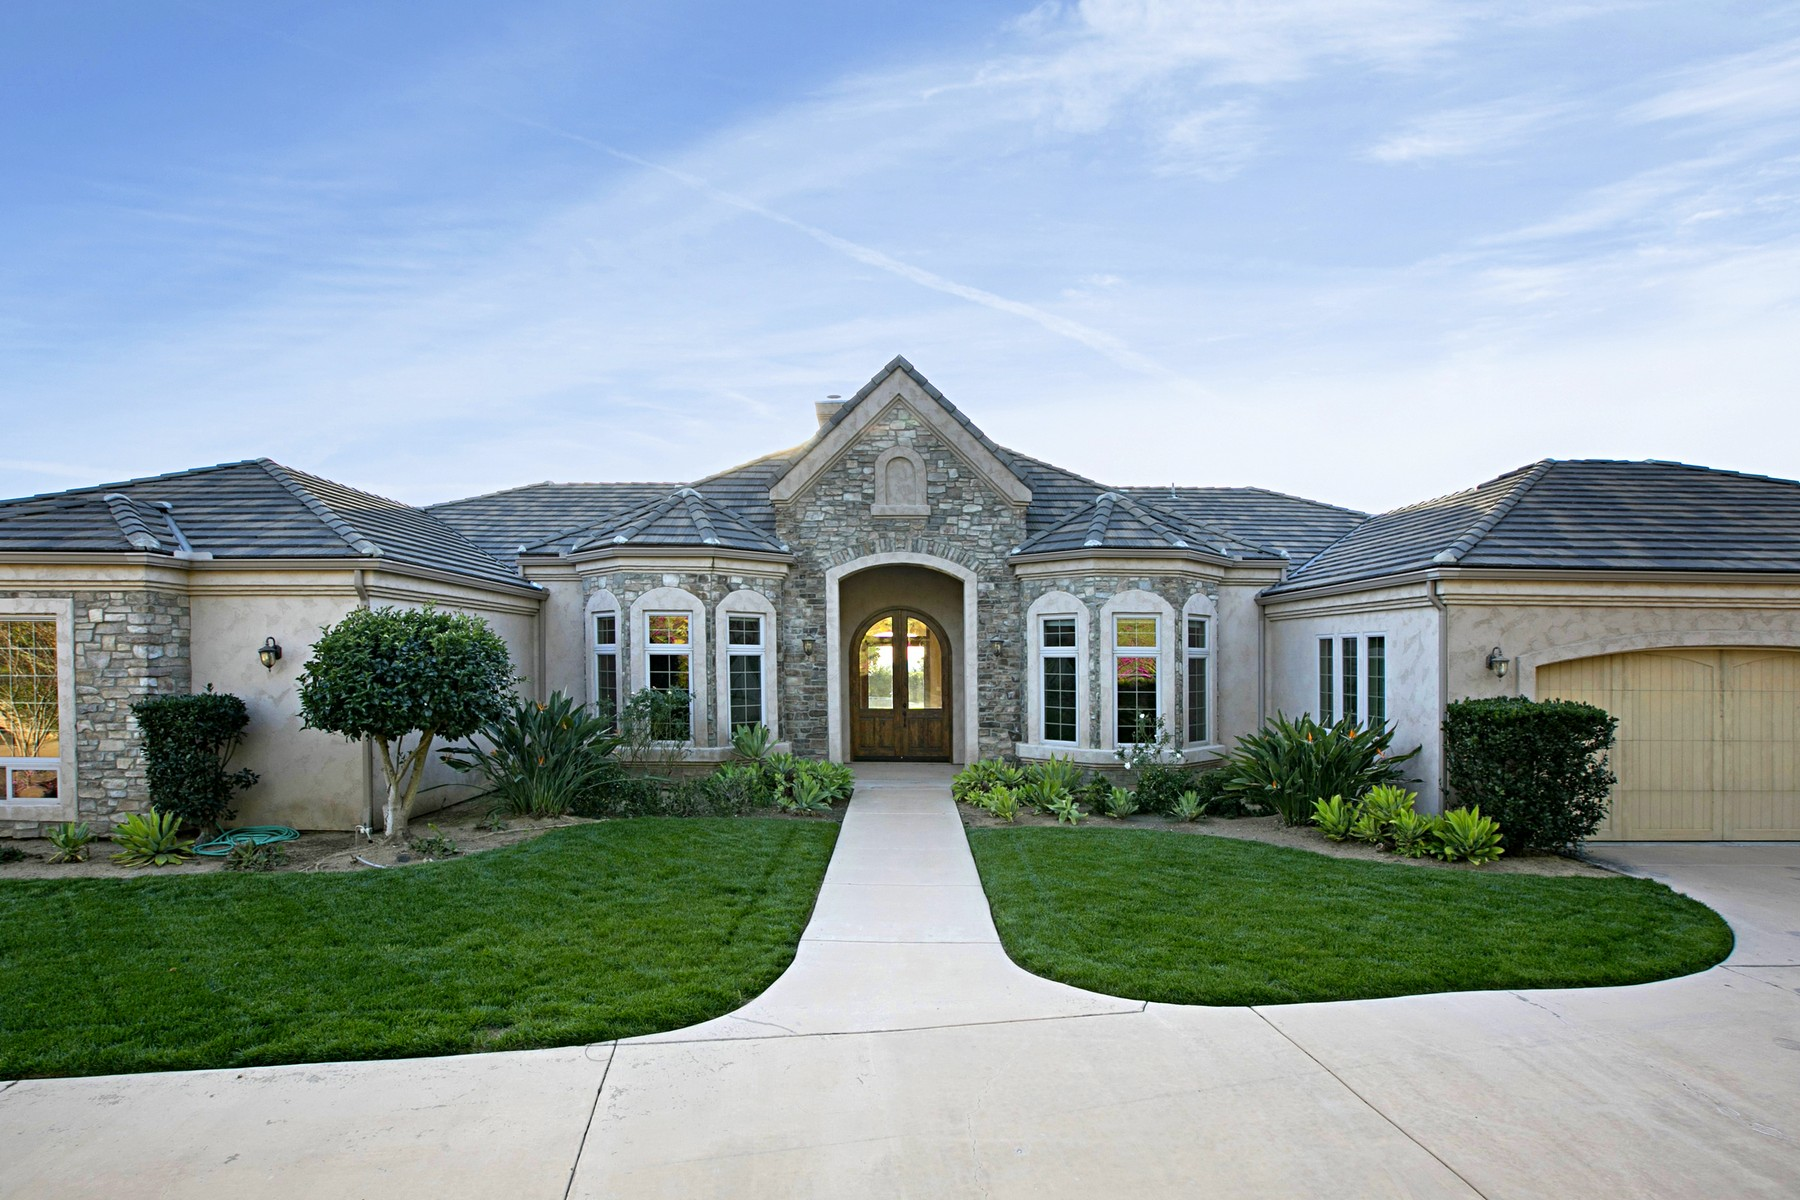 Single Family Home for Active at 15480 Eastvale 15480 Eastvale Road Poway, California 92064 United States